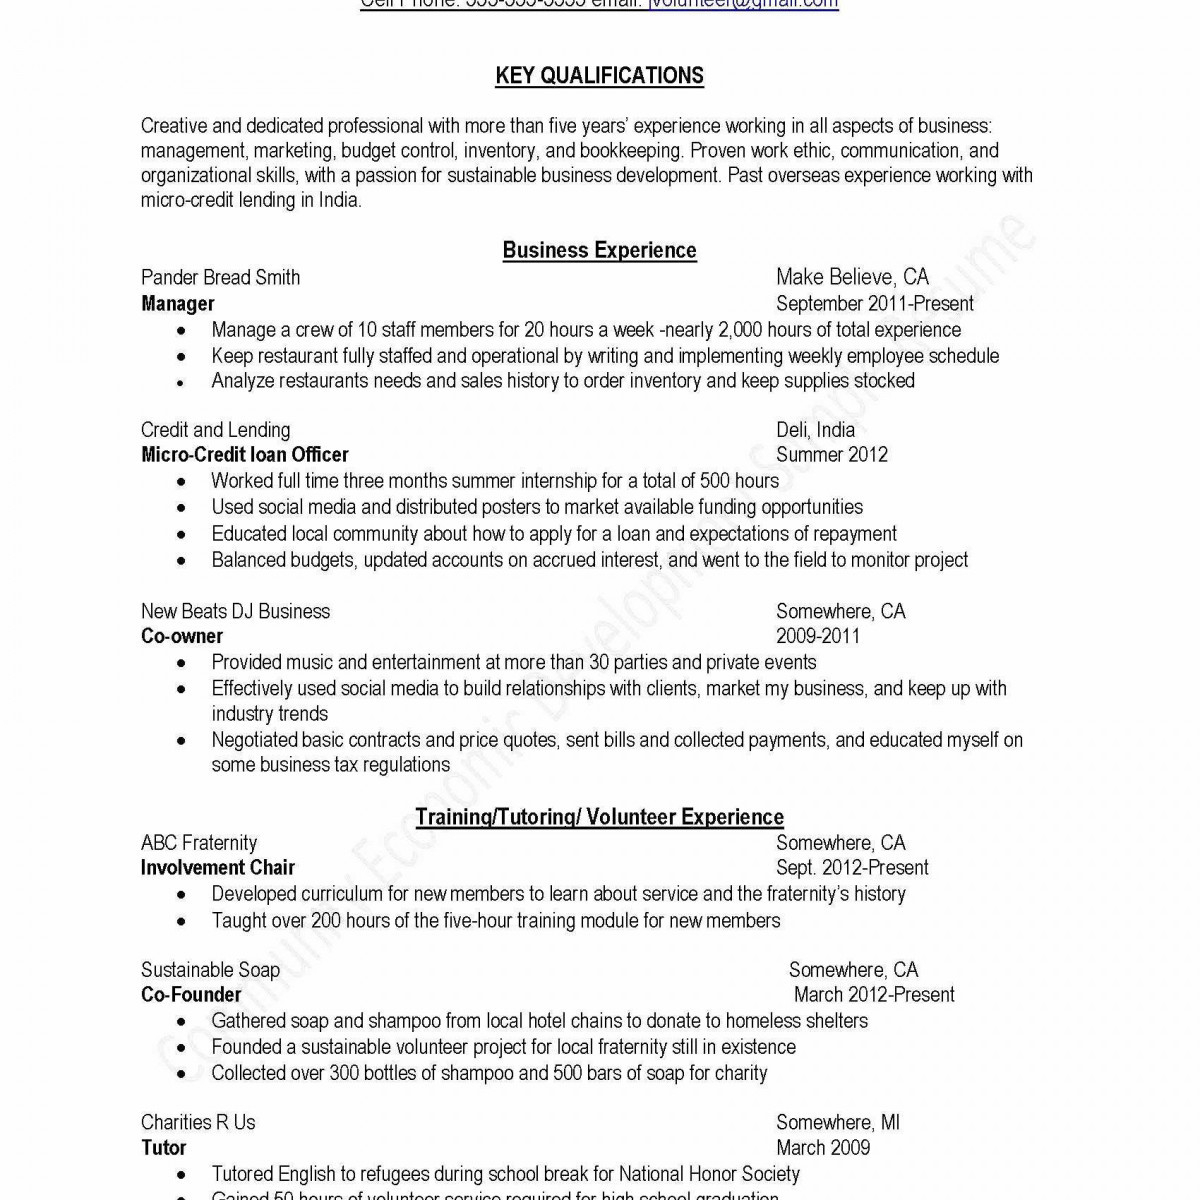 Resume High School - High School Resume Examples for College Amazing College Application